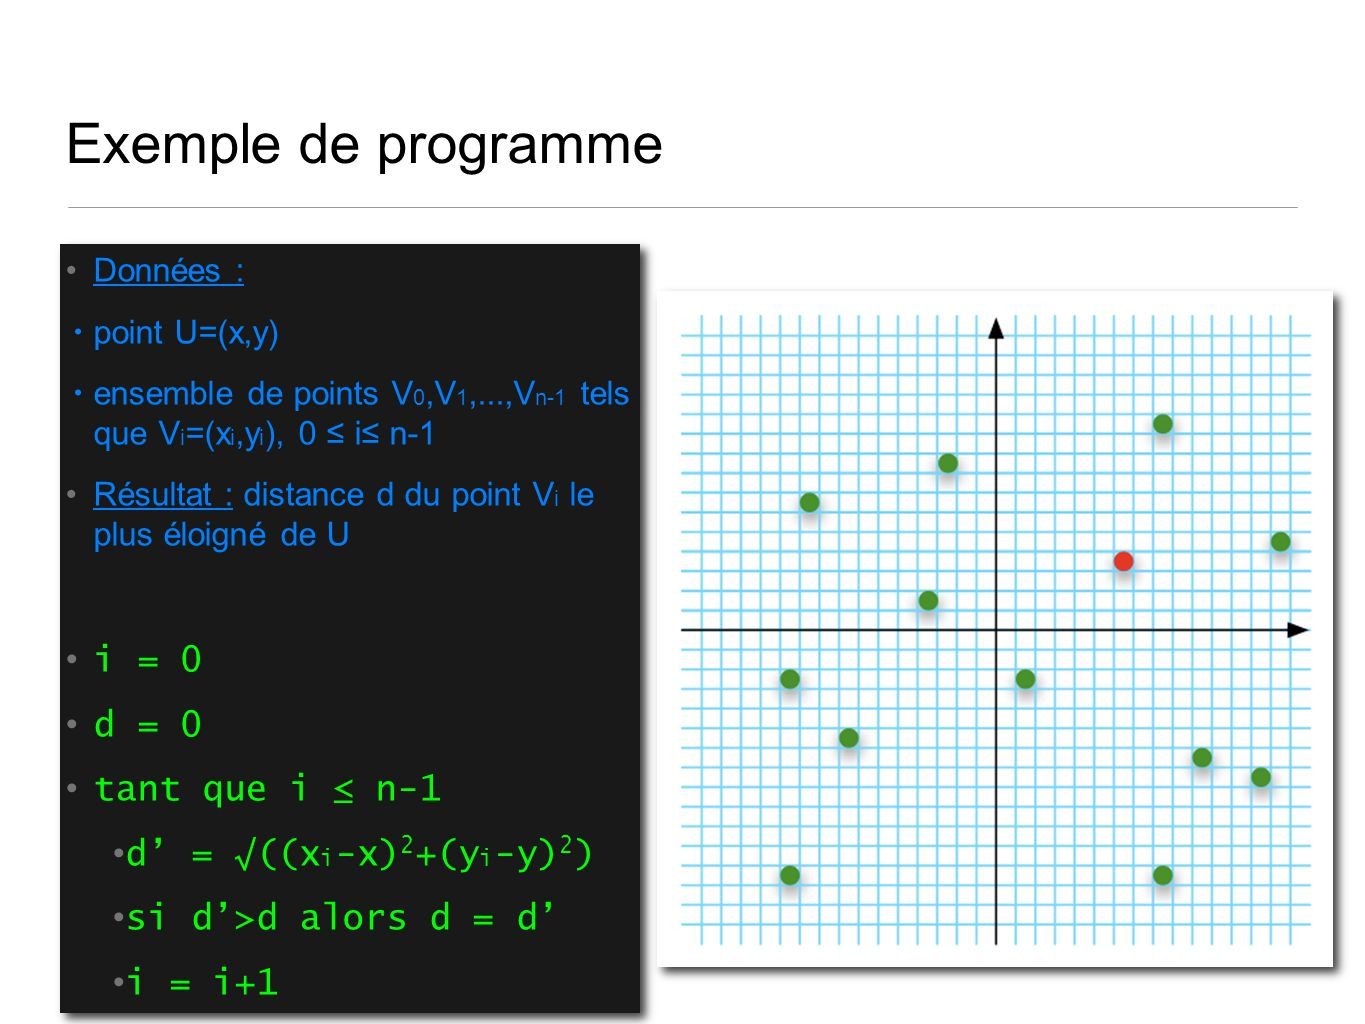 Exemple de programme Données : point U=(x,y) ensemble de points V 0,V 1,...,V n-1 tels que V i =(x i,y i ), 0 i n-1 Résultat : distance d du point V i